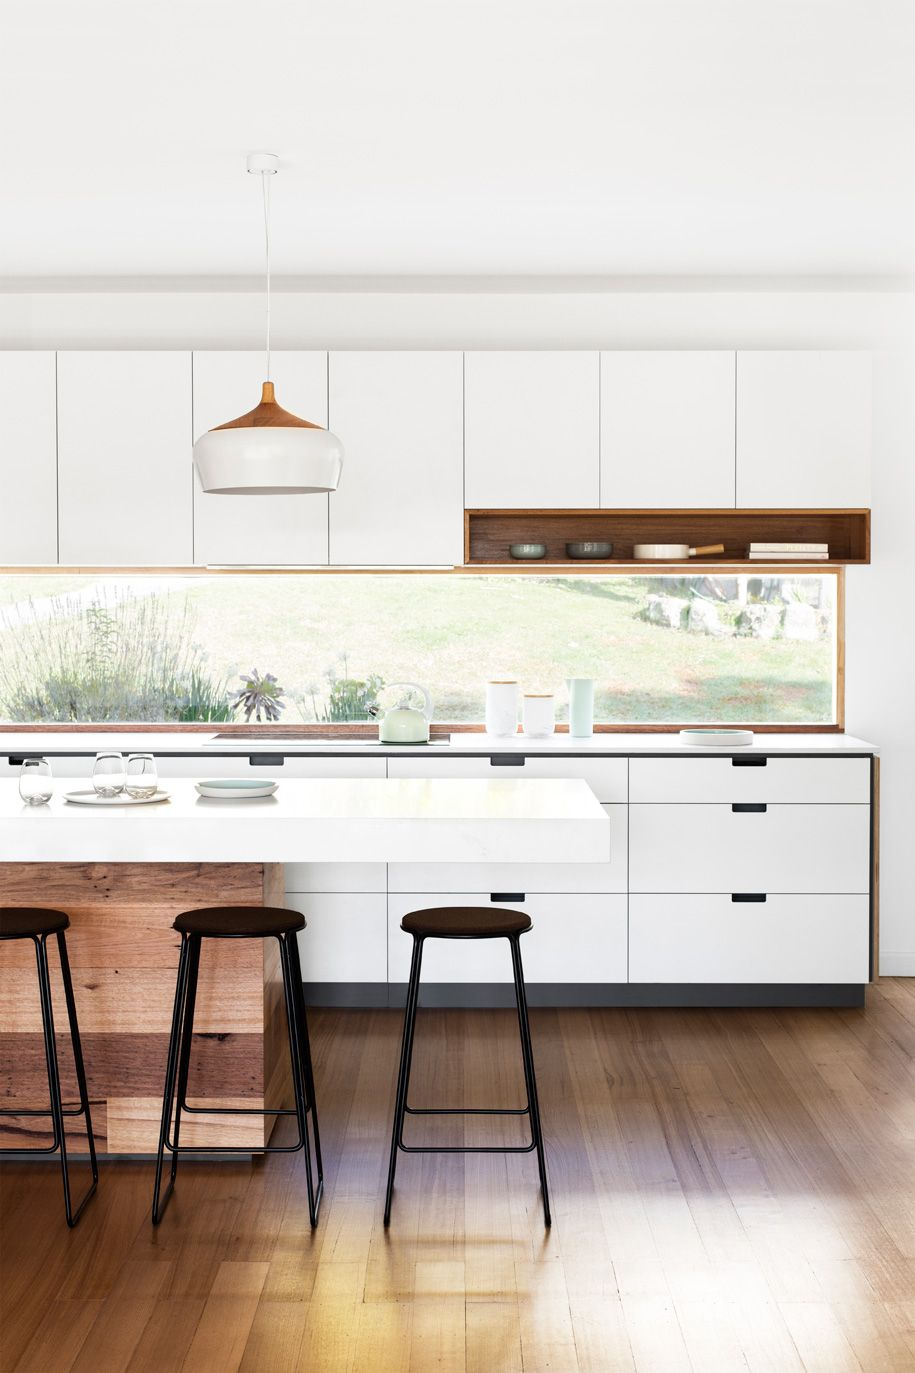 Kitchen with no window  cantilever interiors ivanhoe beautiful method of bringing natural